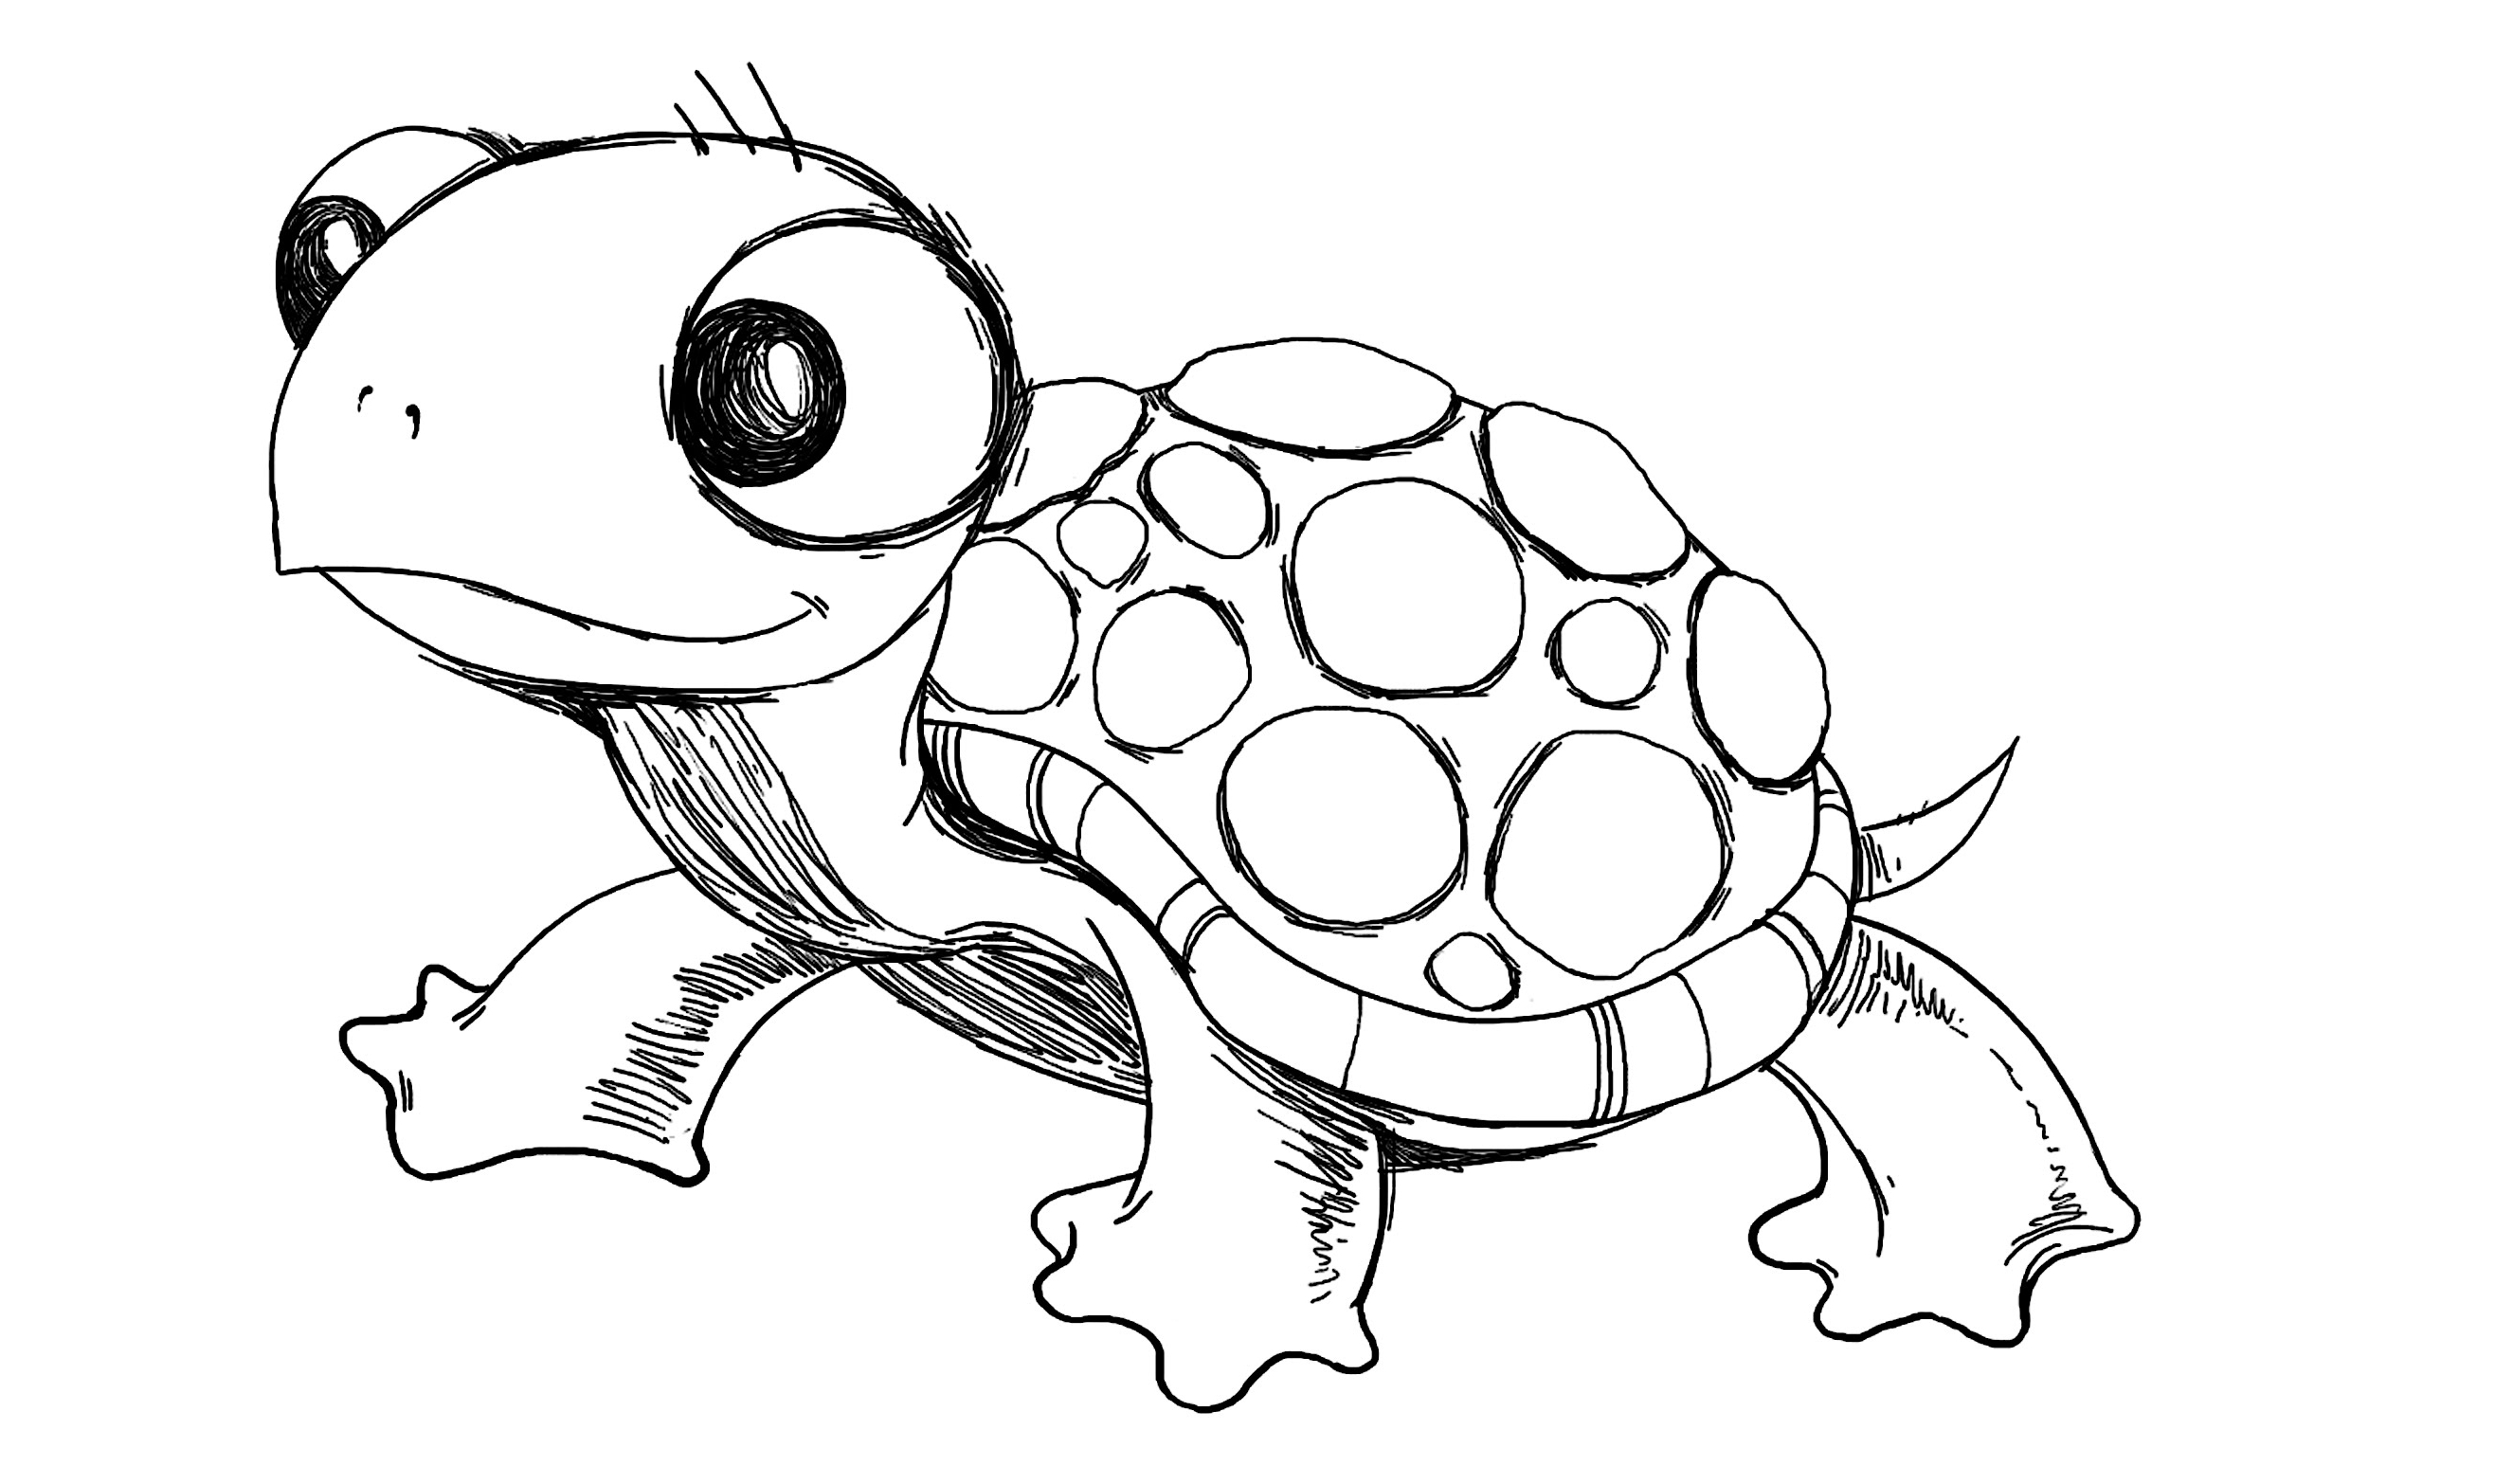 It is a picture of Stupendous Turtle Cartoon Drawing